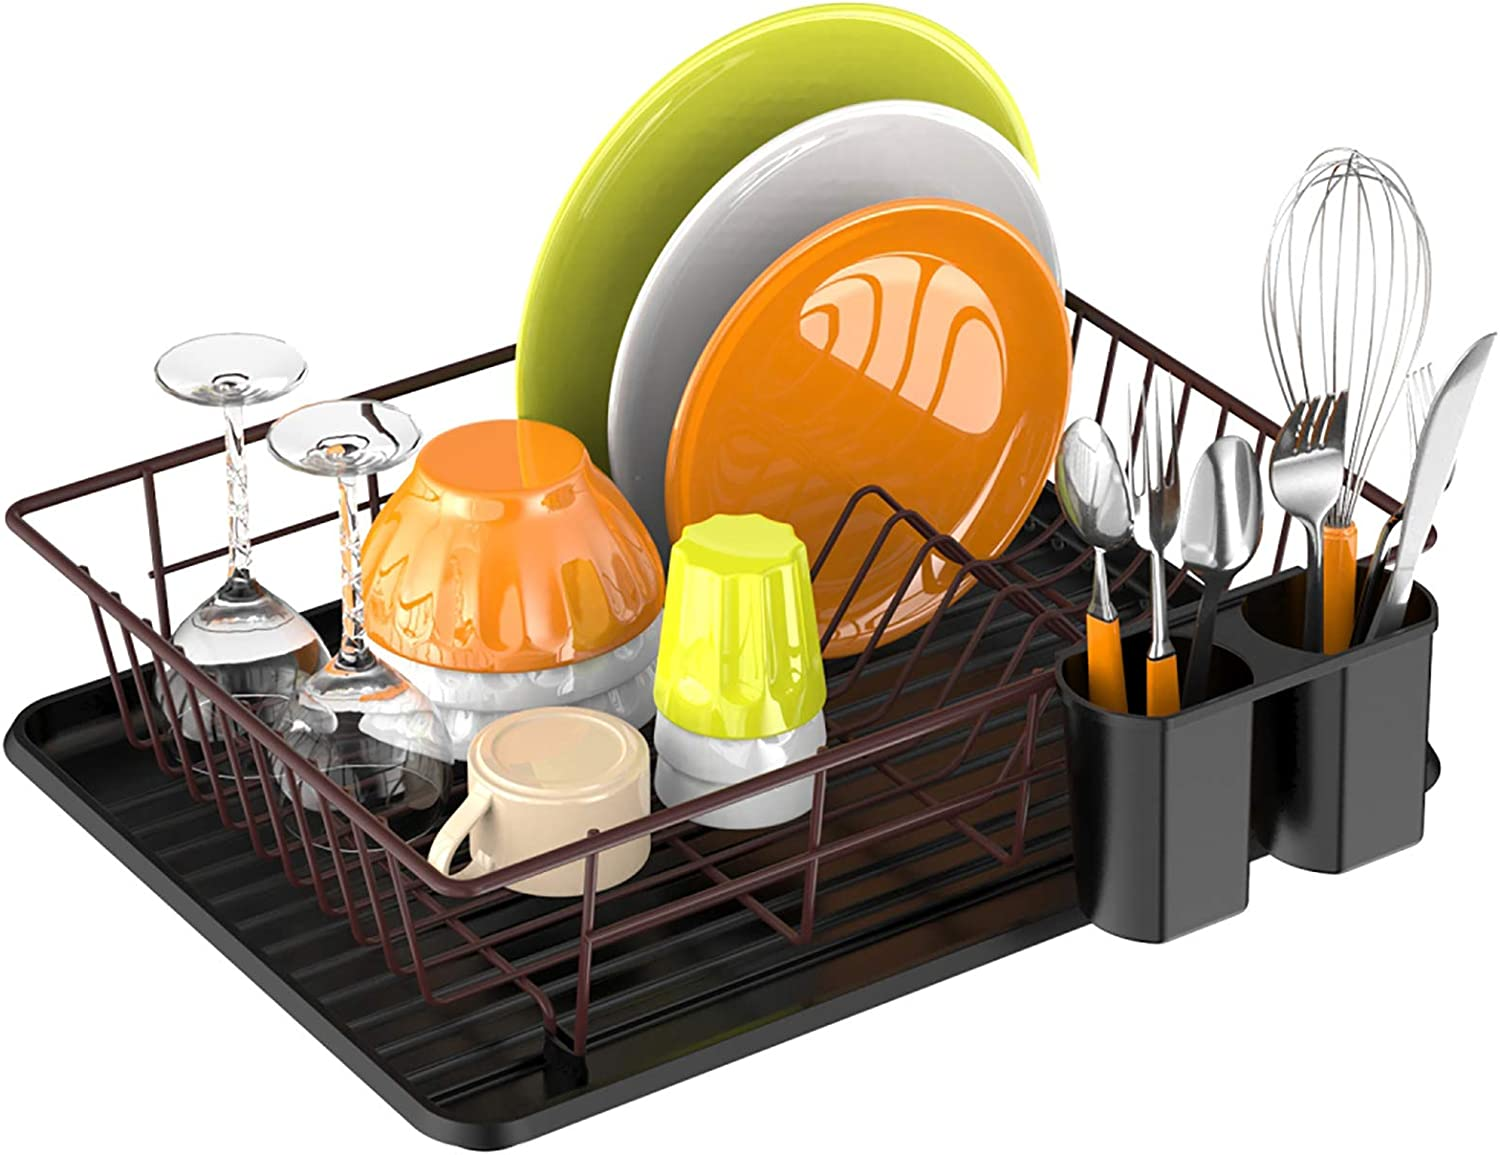 Dish Drying Rack Ace Teah with Drainer Drain SEAL limited product Boa Small Cheap mail order shopping